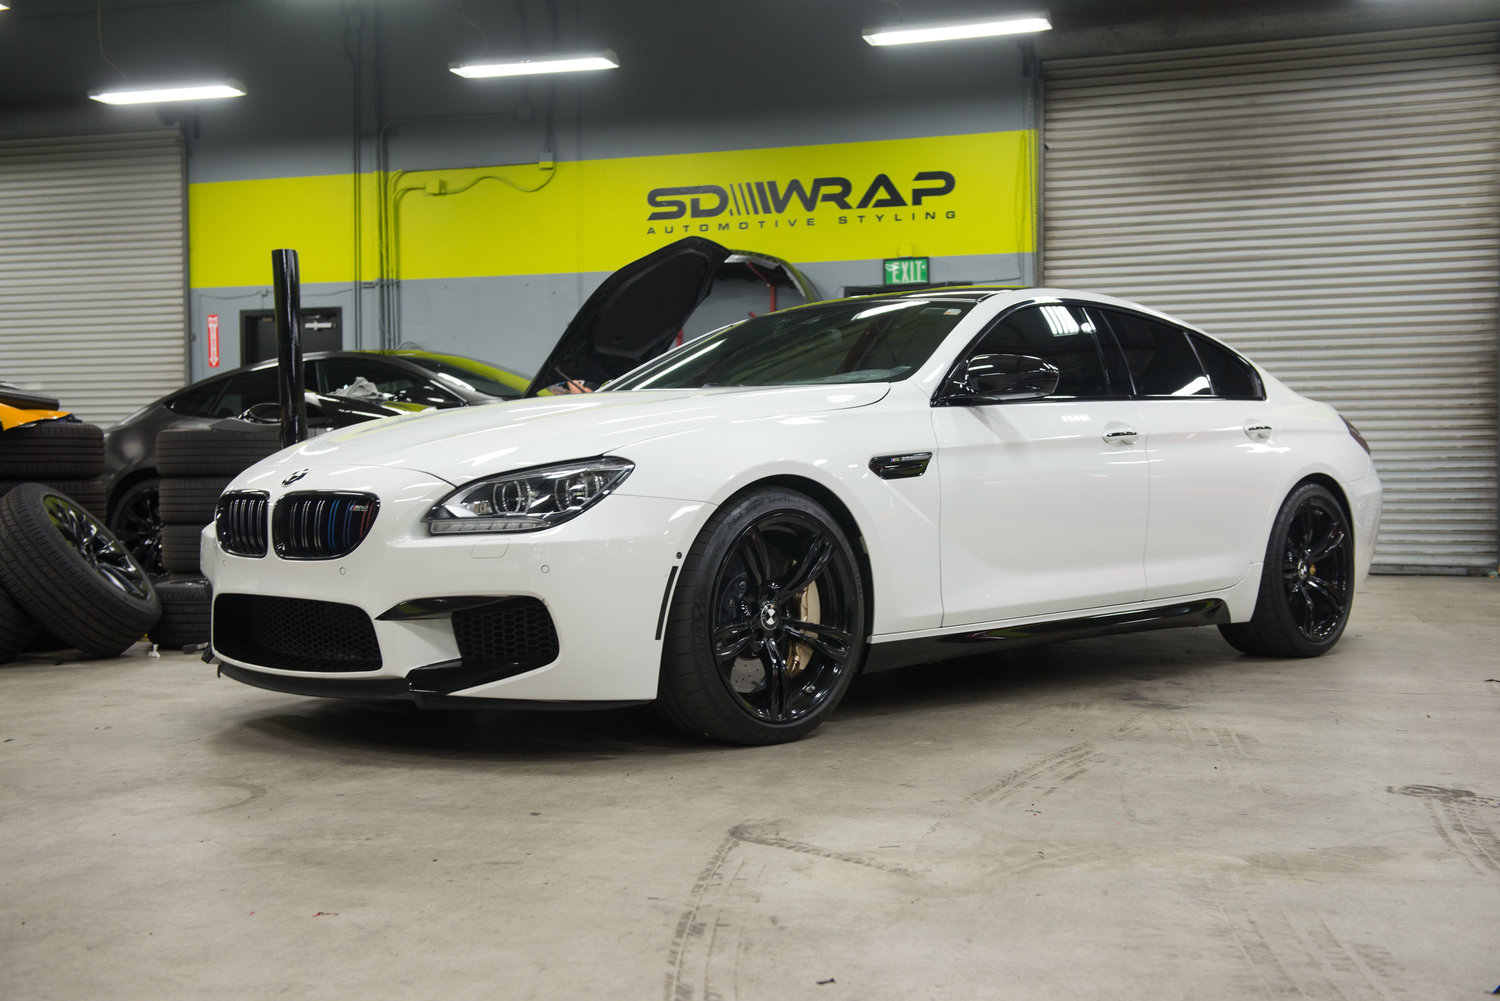 Coupe Series bmw gran coupe m6 BMW M6 Gran Coupe (Blackout Package) — SD WRAP